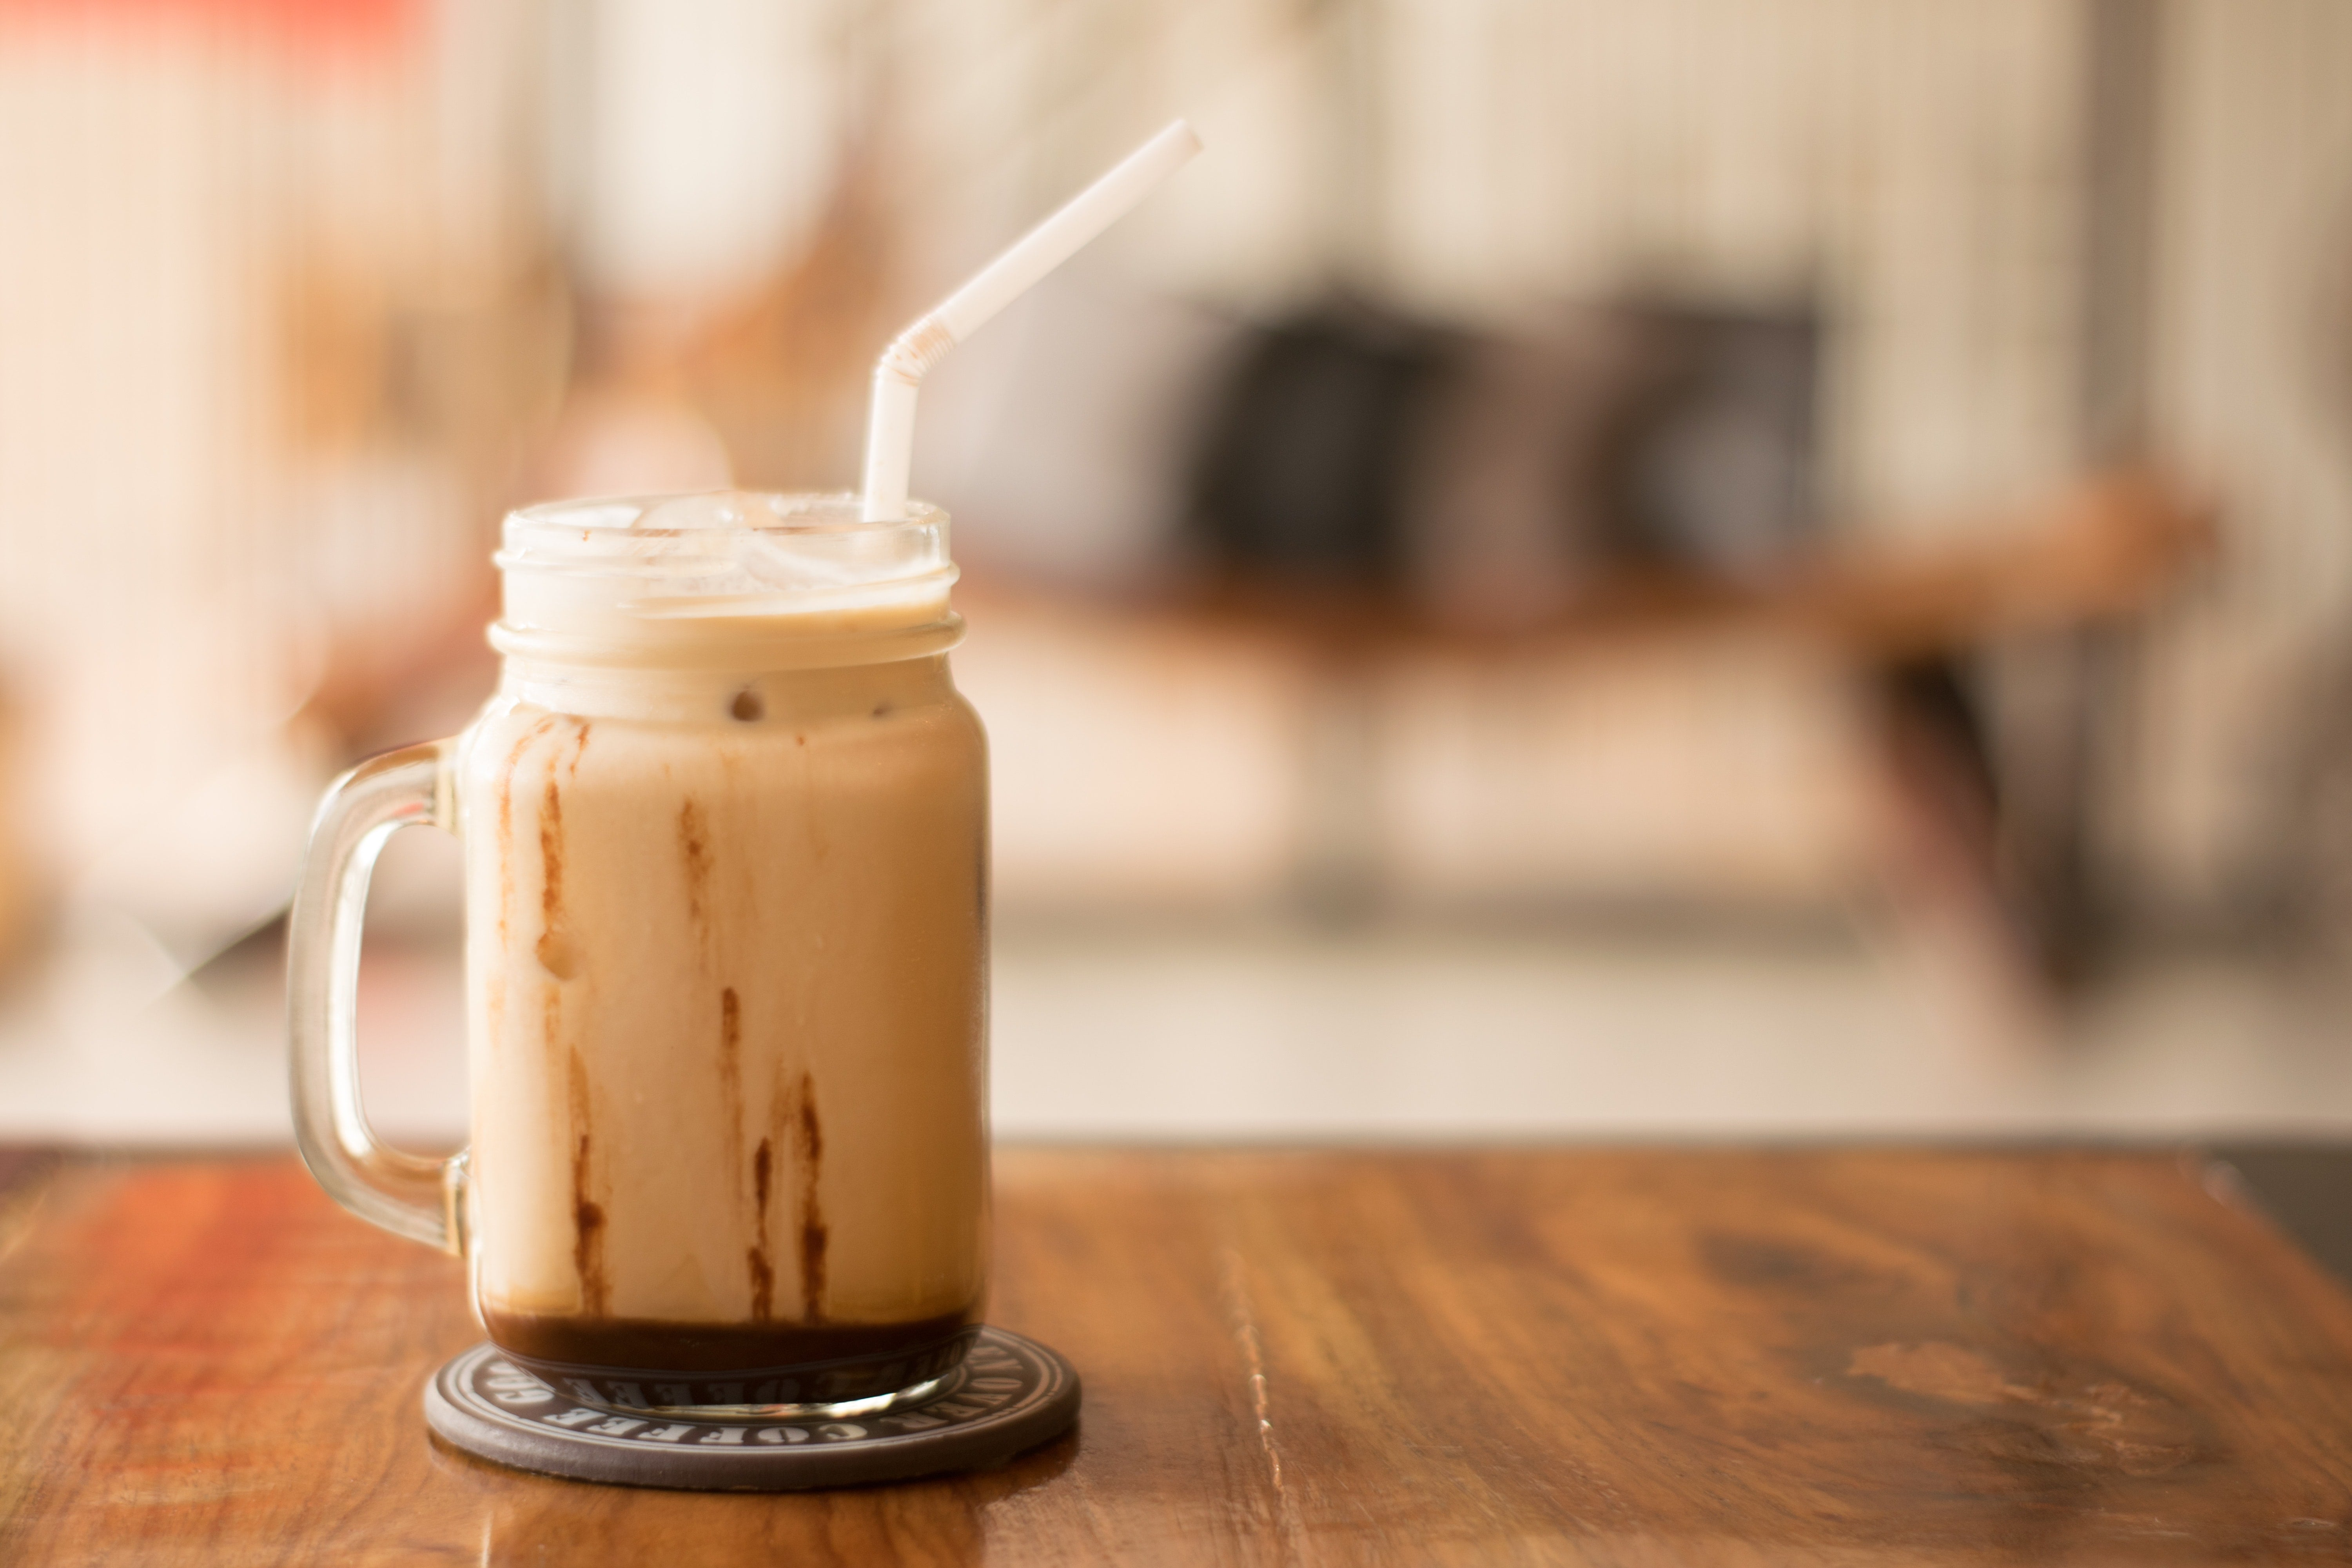 places to have cold coffee